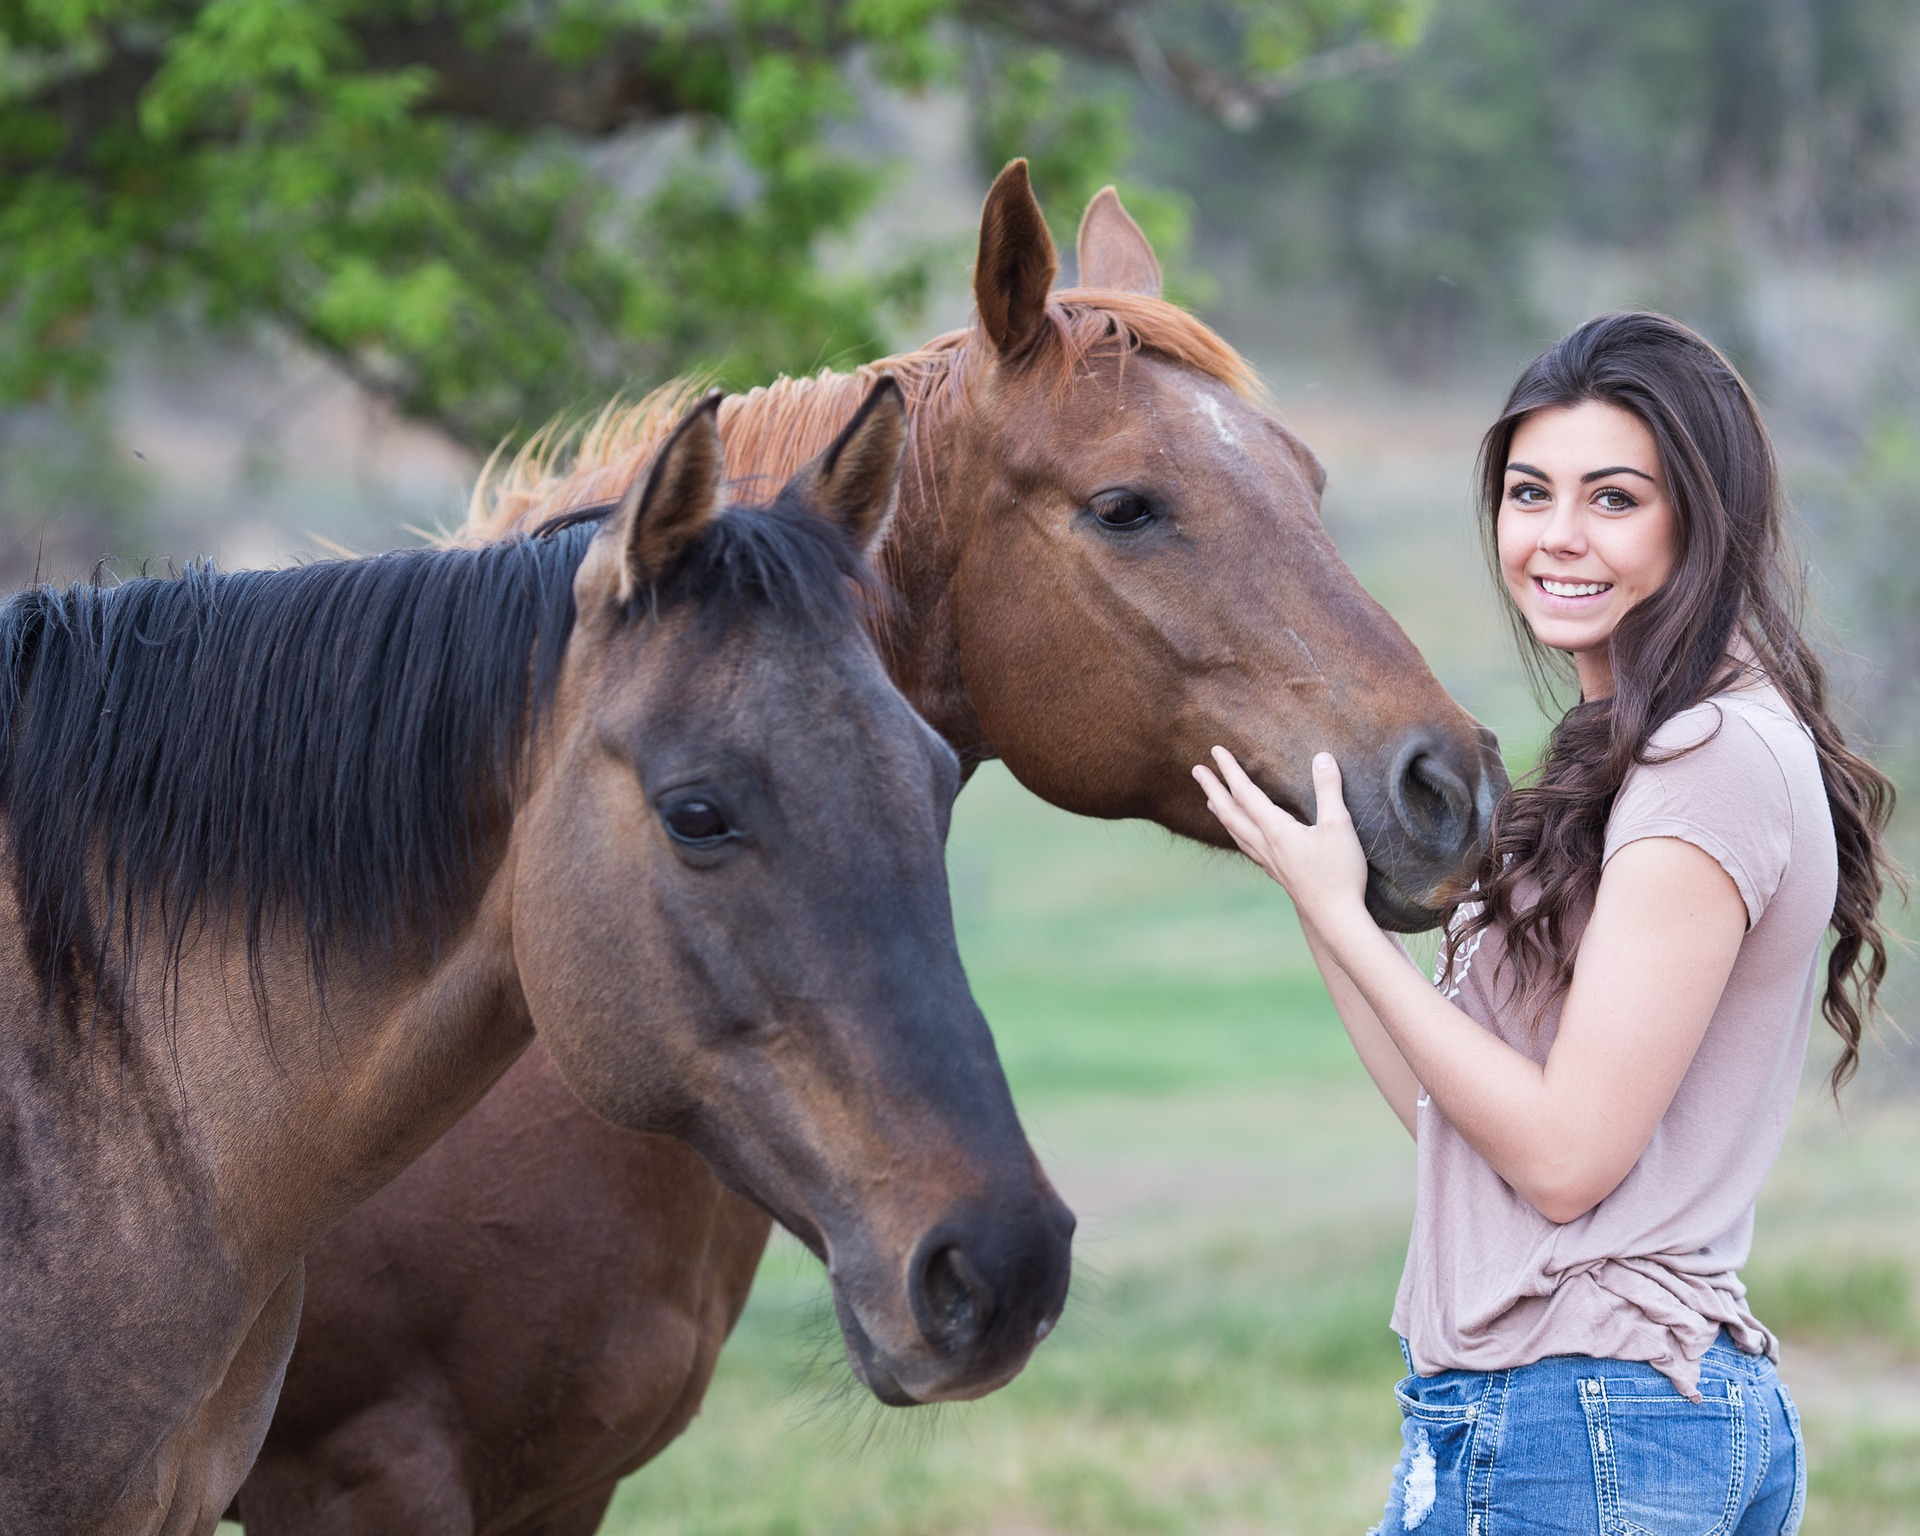 a woman with long brown hair pets two brown horses